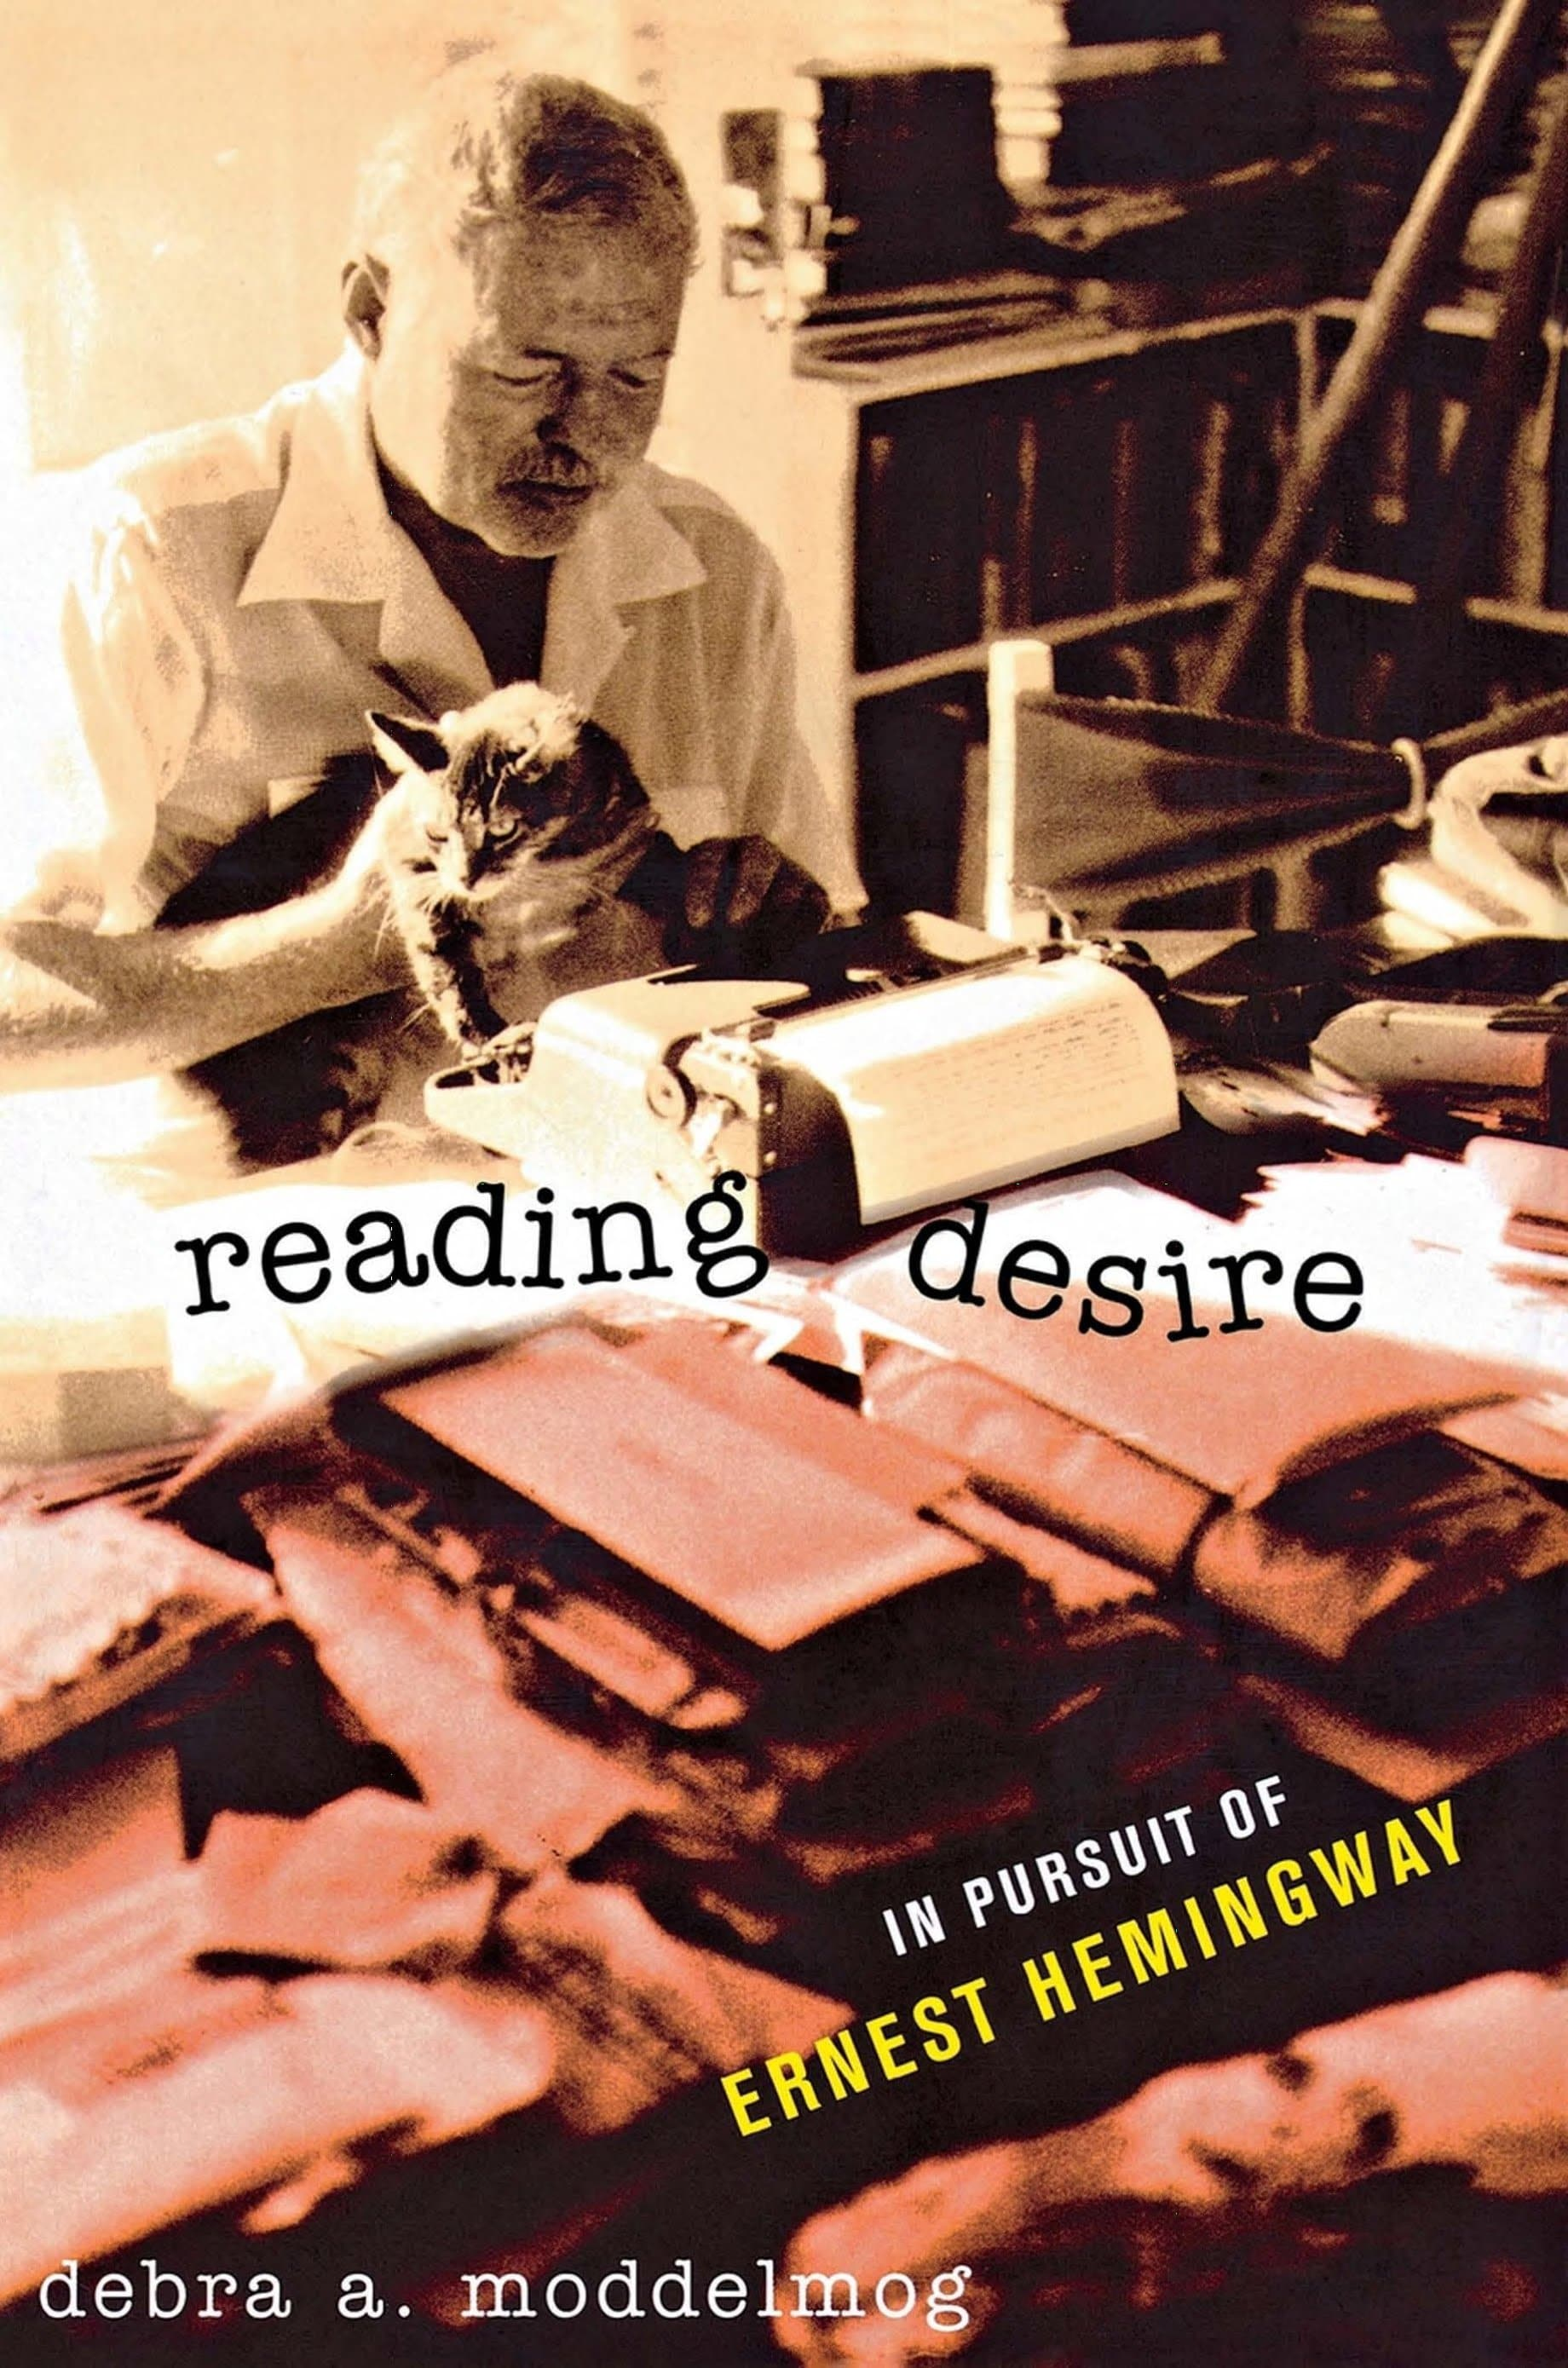 Reading Desire - Reading Desire: In Pursuit of Ernest Hemingway